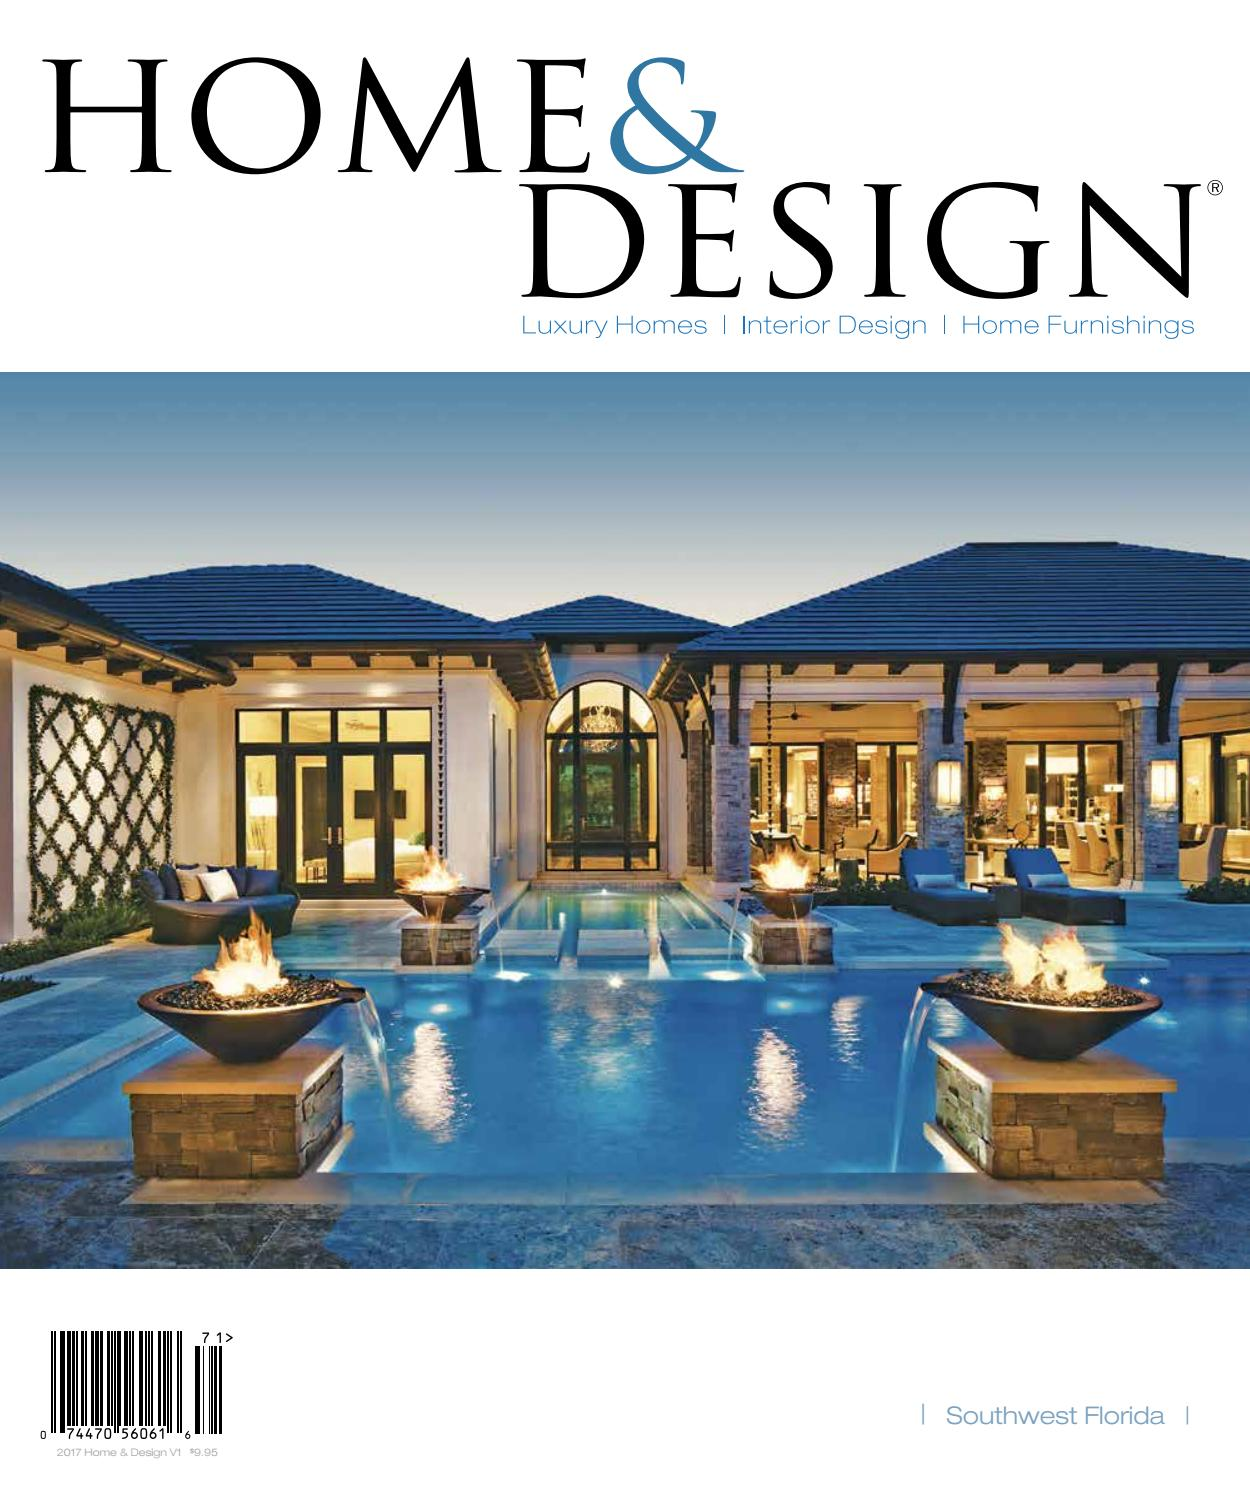 Home & Design Magazine | 2017 Southwest Florida Edition by Anthony Florida Home Design Architecture on paul rudolph homes, south west homes, interior design homes, florida bungalow homes, florida lifestyles homes, florida villa homes, florida house plans, florida family homes, florida real estate homes, architectural record homes, florida luxury homes, florida abandoned homes, florida coastline homes, florida style house, veranda homes,